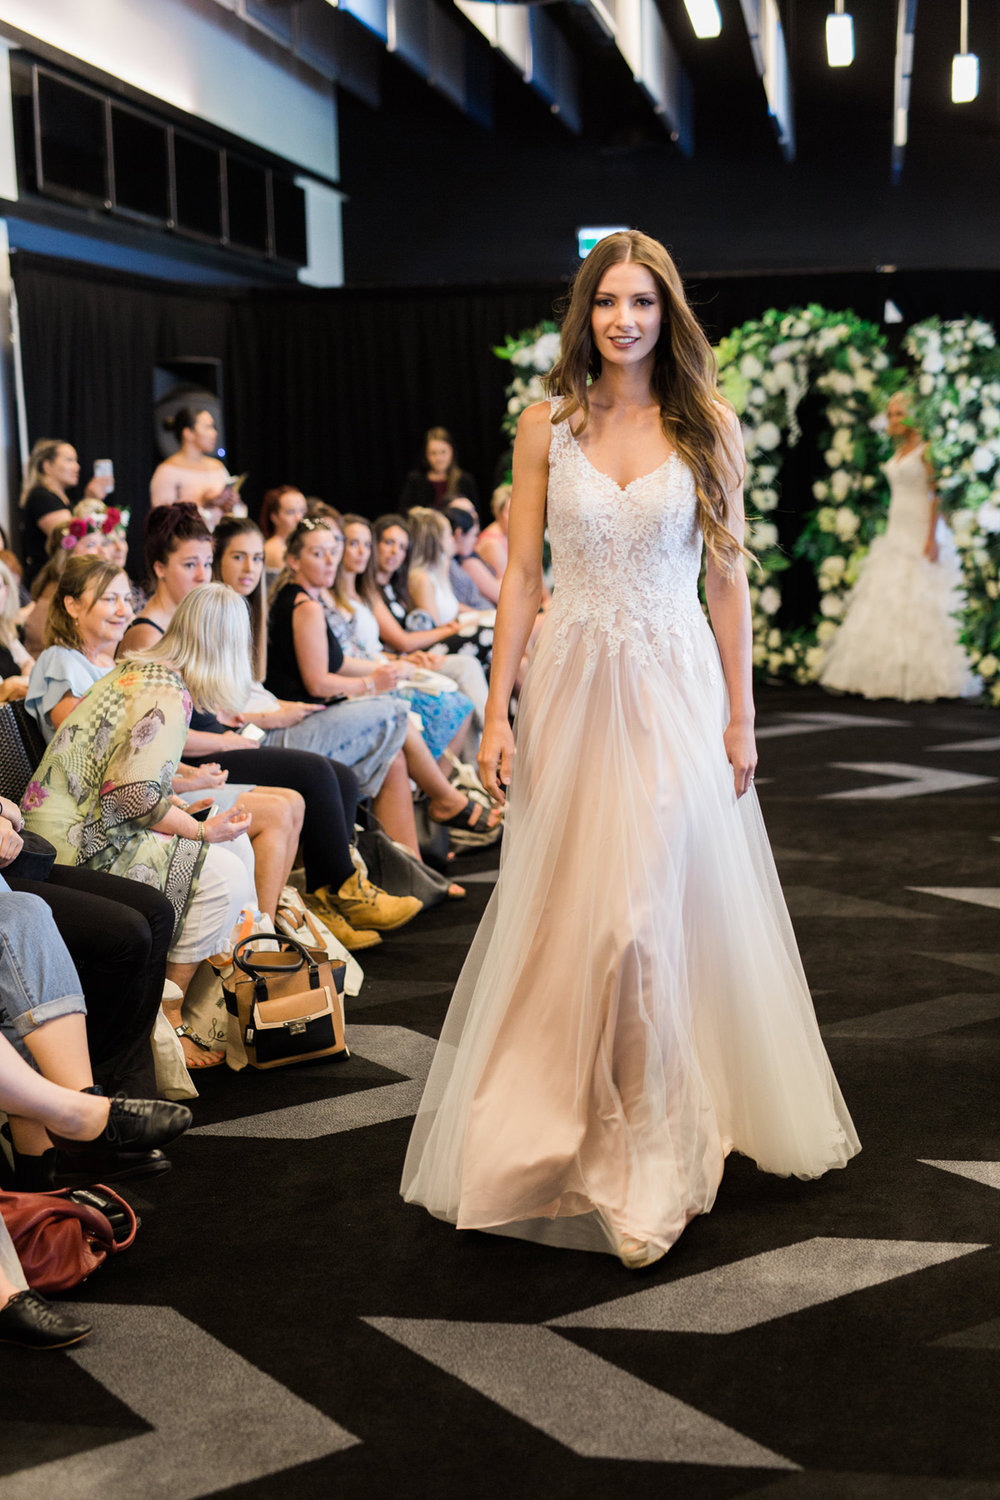 Love-Wedding-Festival-Sydney-Wedding-Gown-Jean-Fox-Bridal-1.jpg